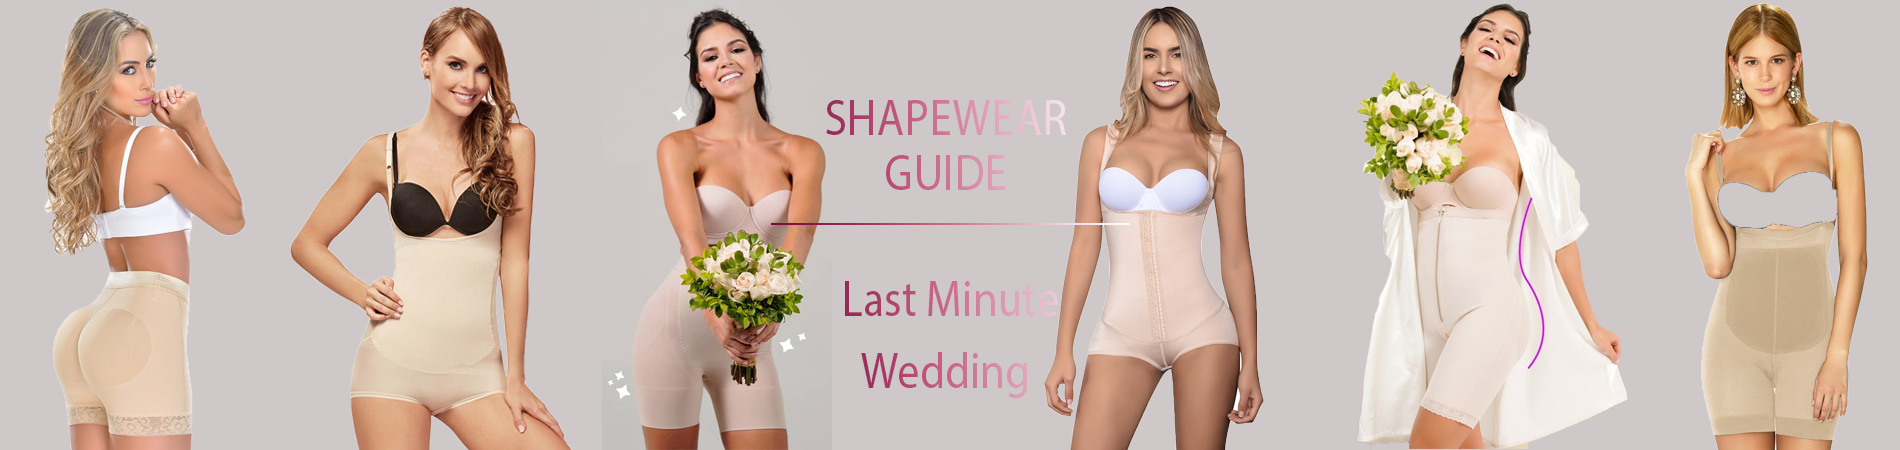 Last Minute Wedding Shapewear Guide